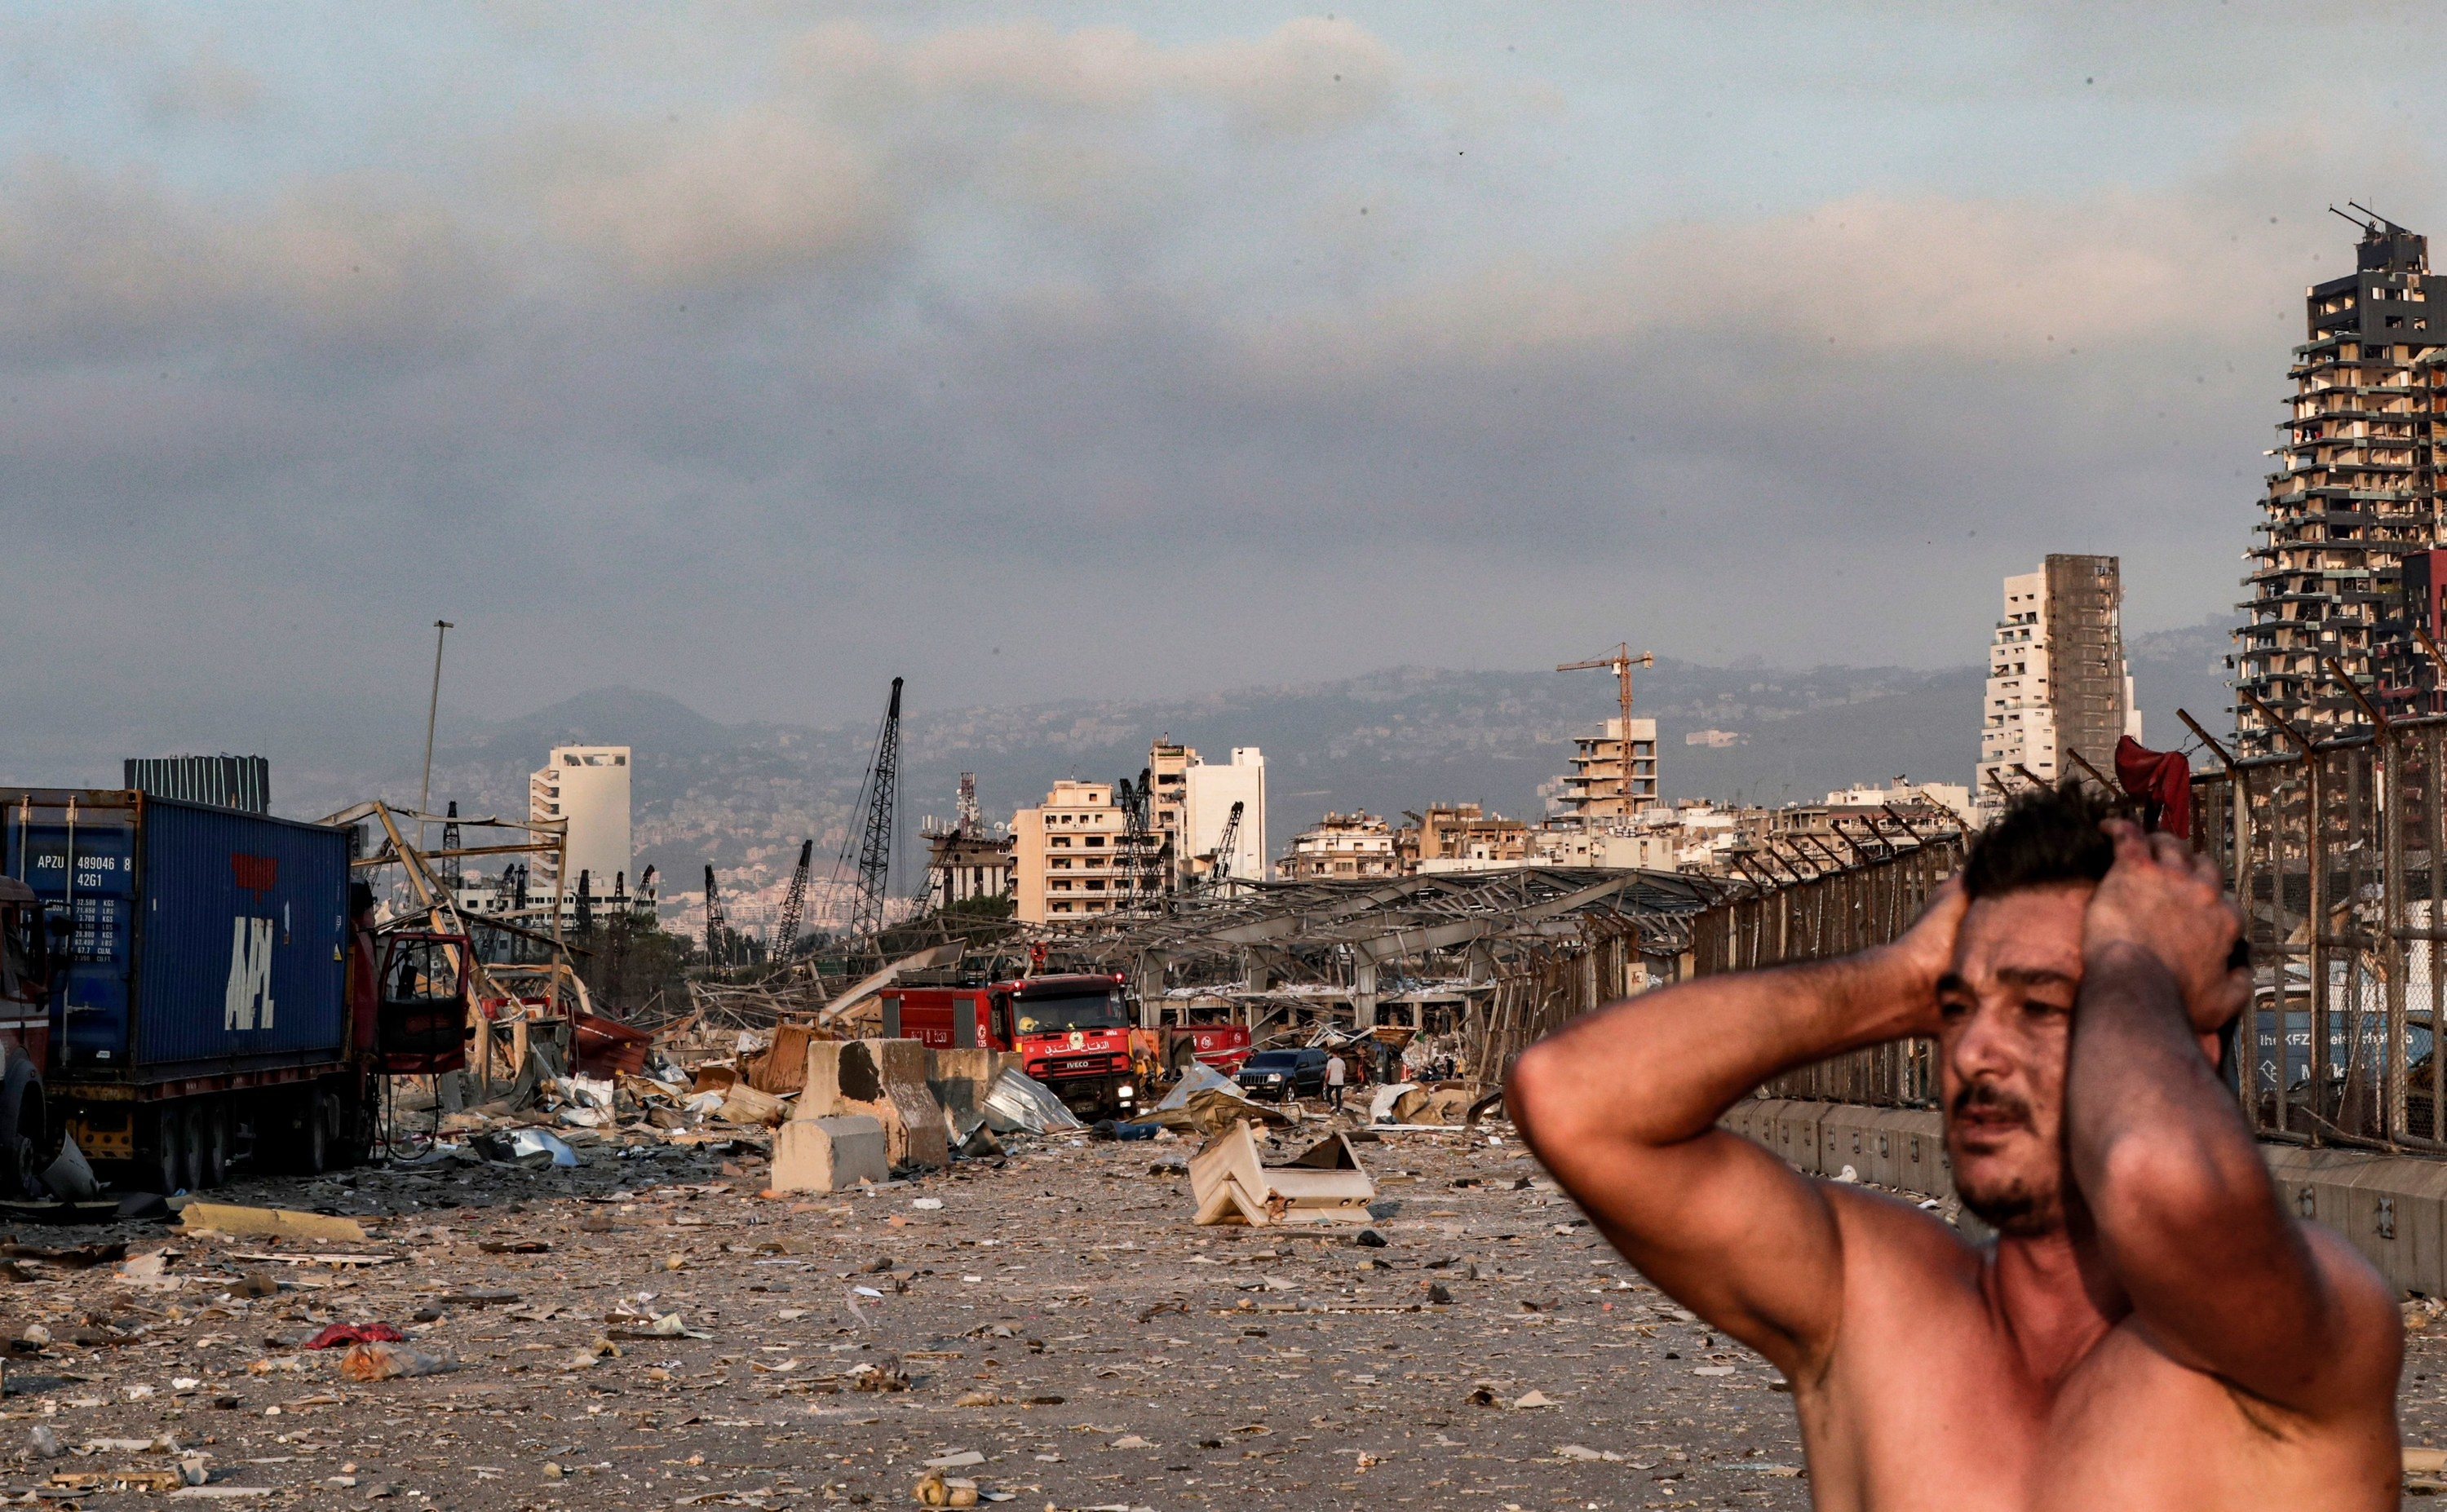 A shirtless man puts his hands on his head amid a field of debris